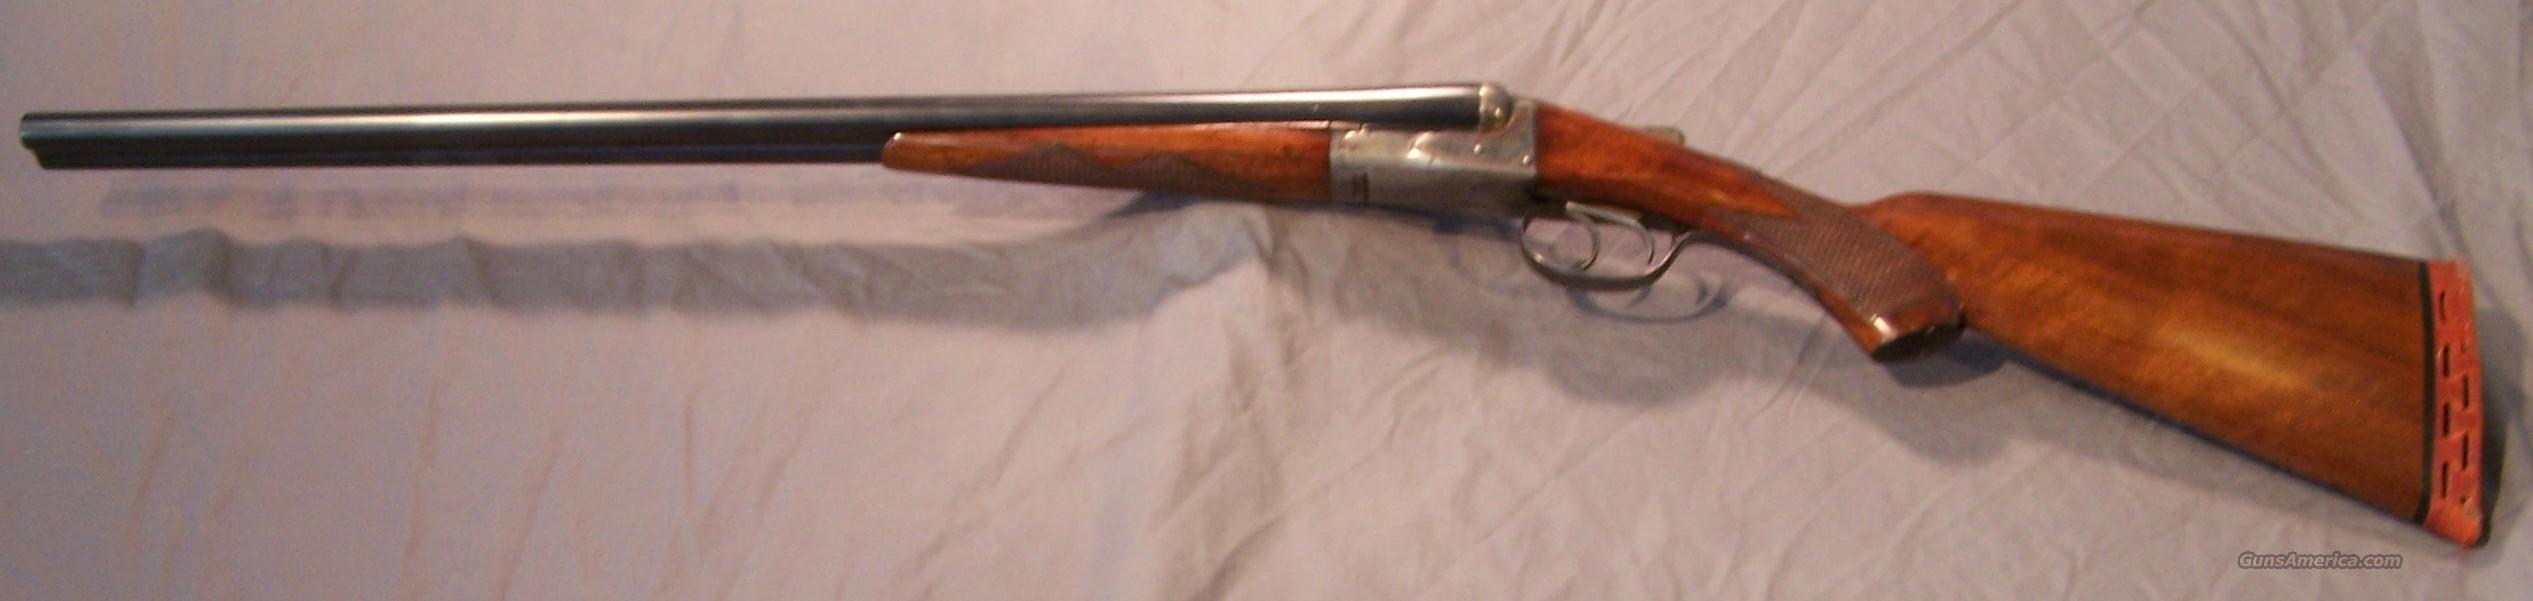 Fox Sterlingworth 20 gauge  Guns > Shotguns > Fox Shotguns